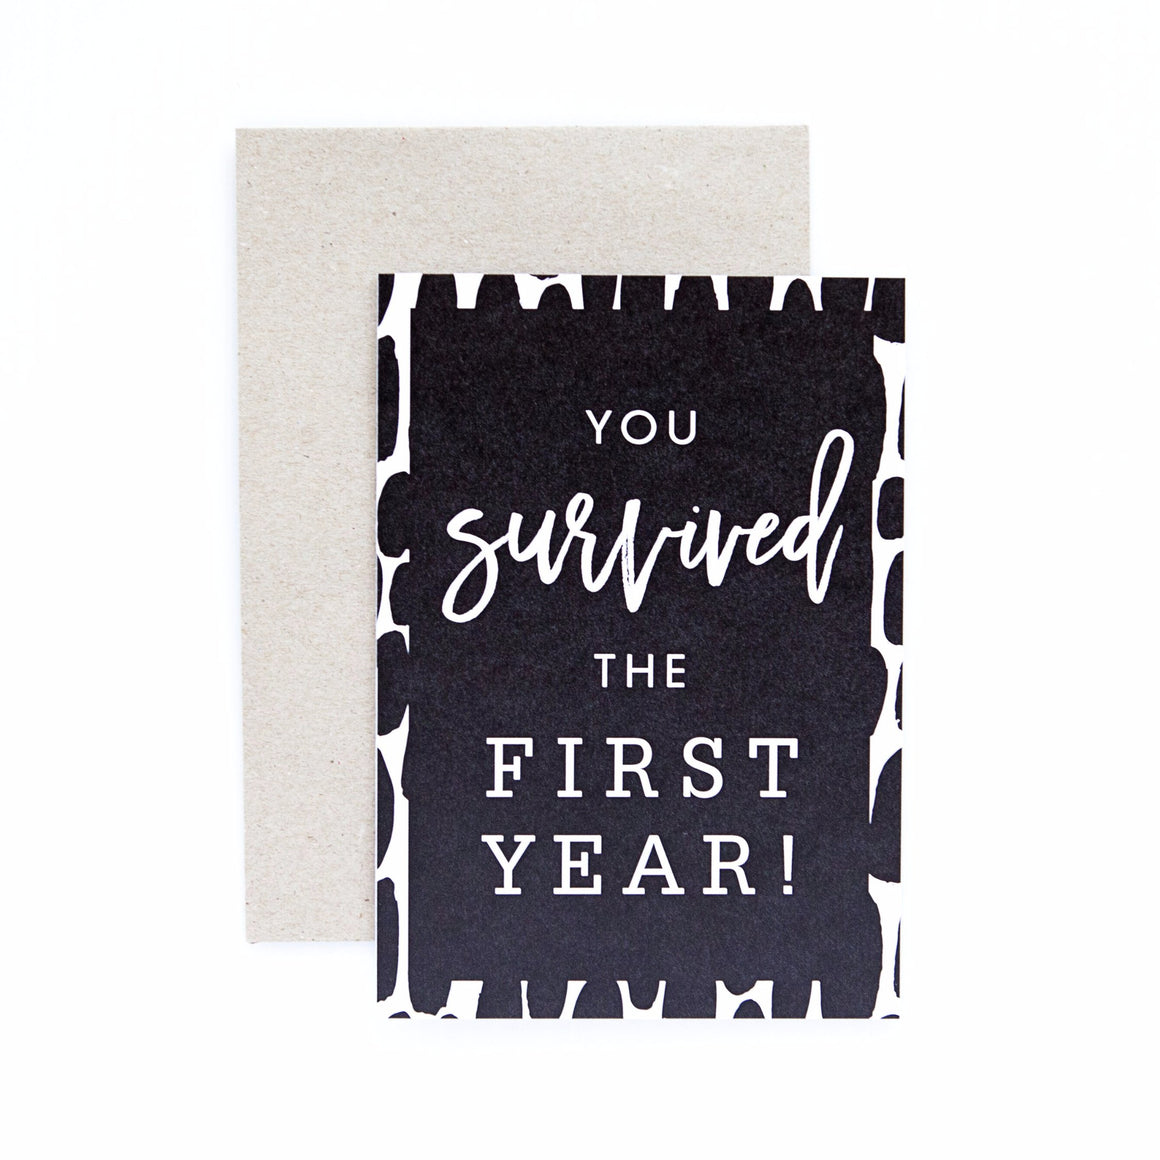 Seriously 'You Survived The First Year' Greeting Card